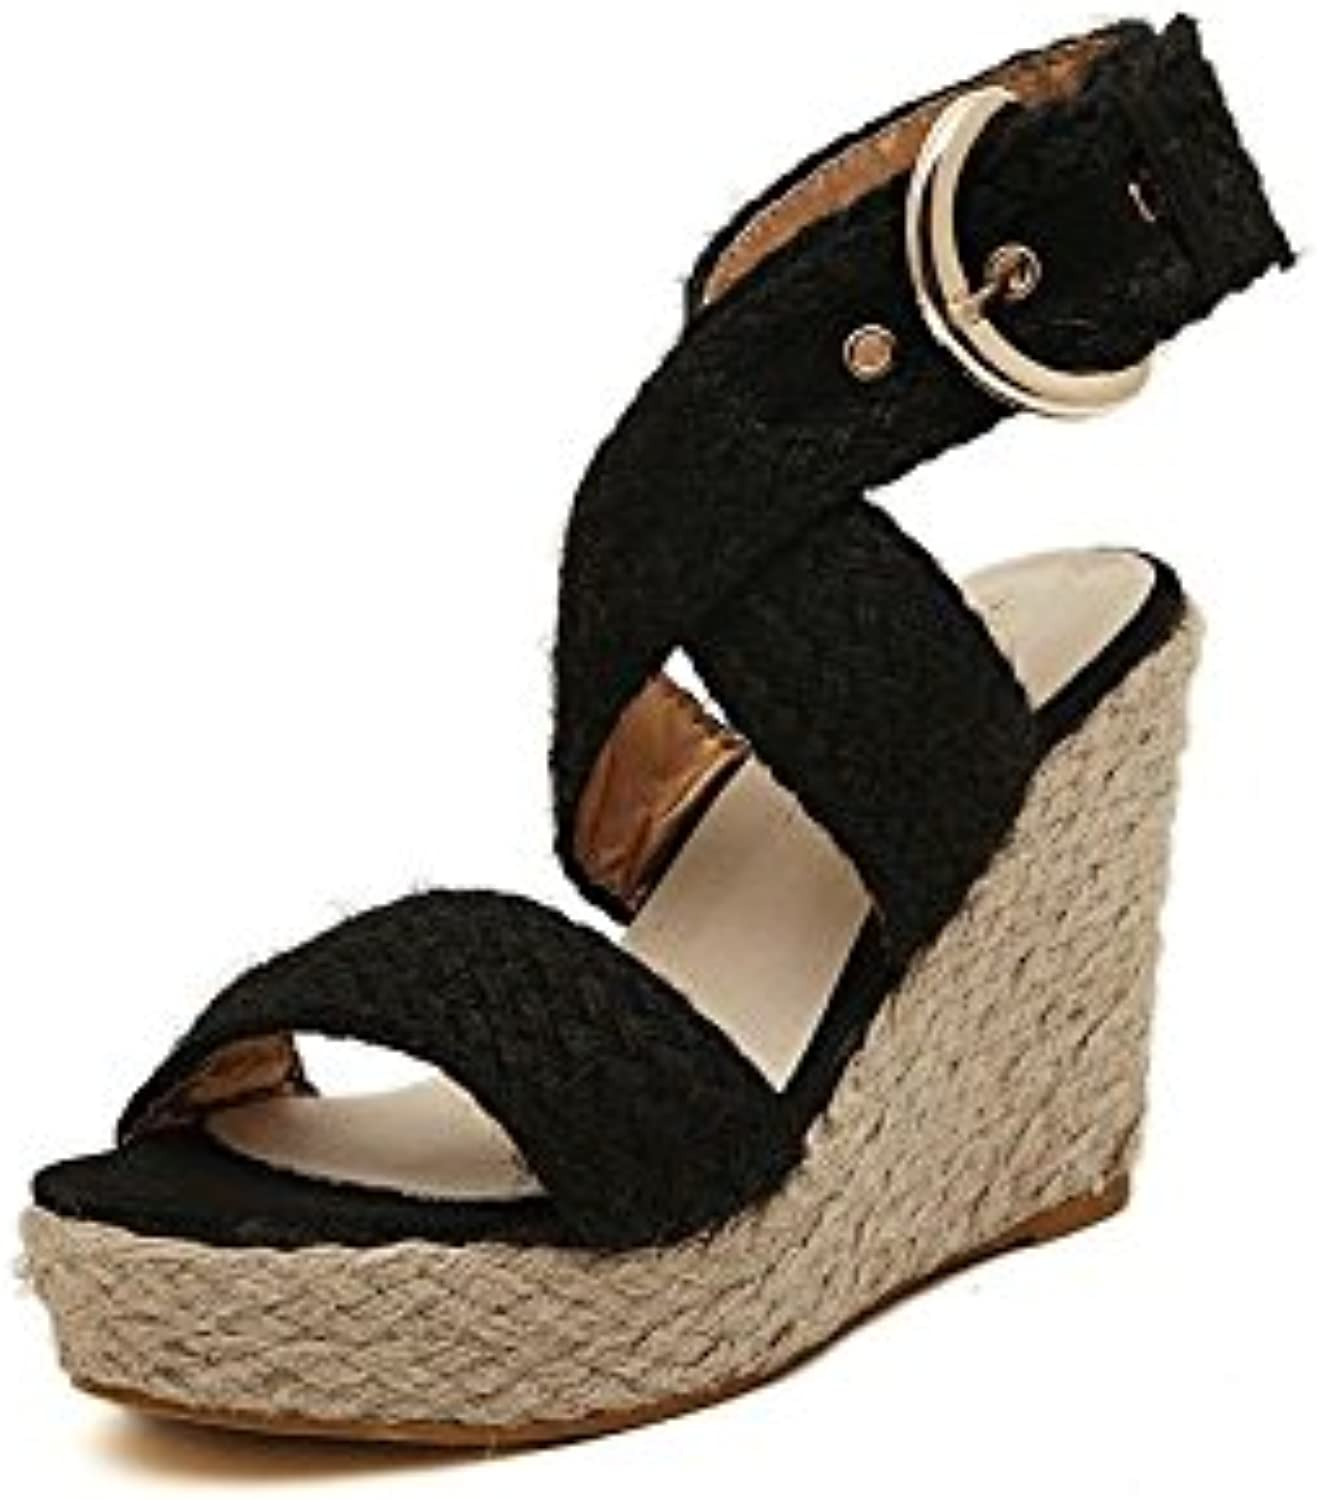 Women's Charm Buckle Sweet Elegance Sandy Beach Summer Straw Braid Platform Dress Wedges Sandals